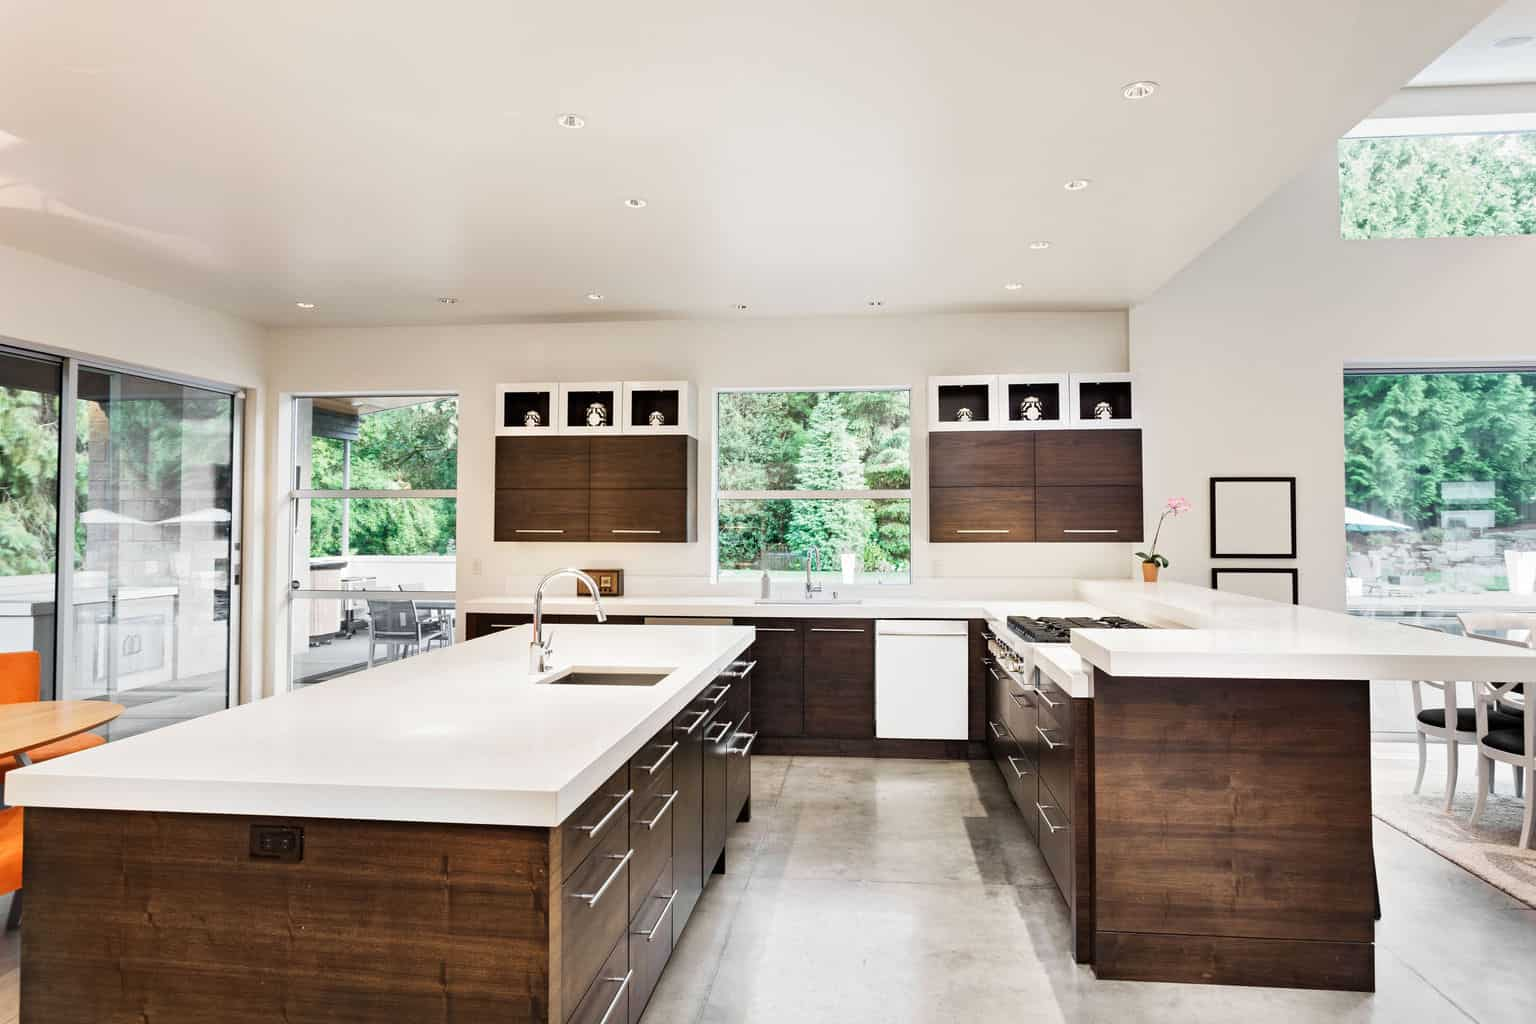 Quartzite flooring for posh outlook an guide to quartzite tile how it should be installed and the best way to care for it let us address some of the most common questions about quartzite stone flooring for you dailygadgetfo Choice Image